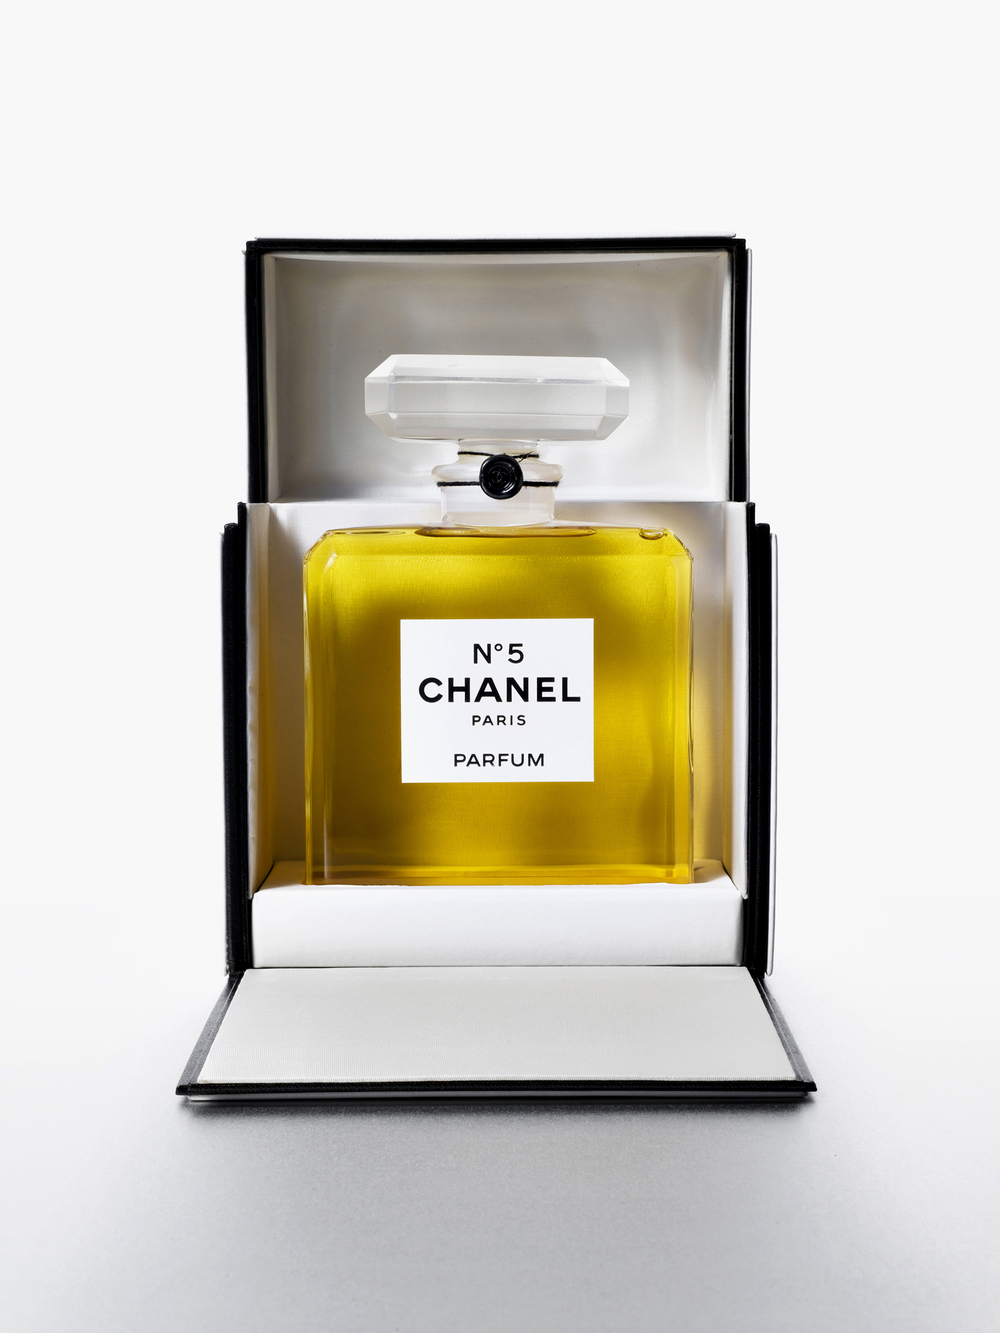 13R_CHANEL bottle 1-WEB.jpg